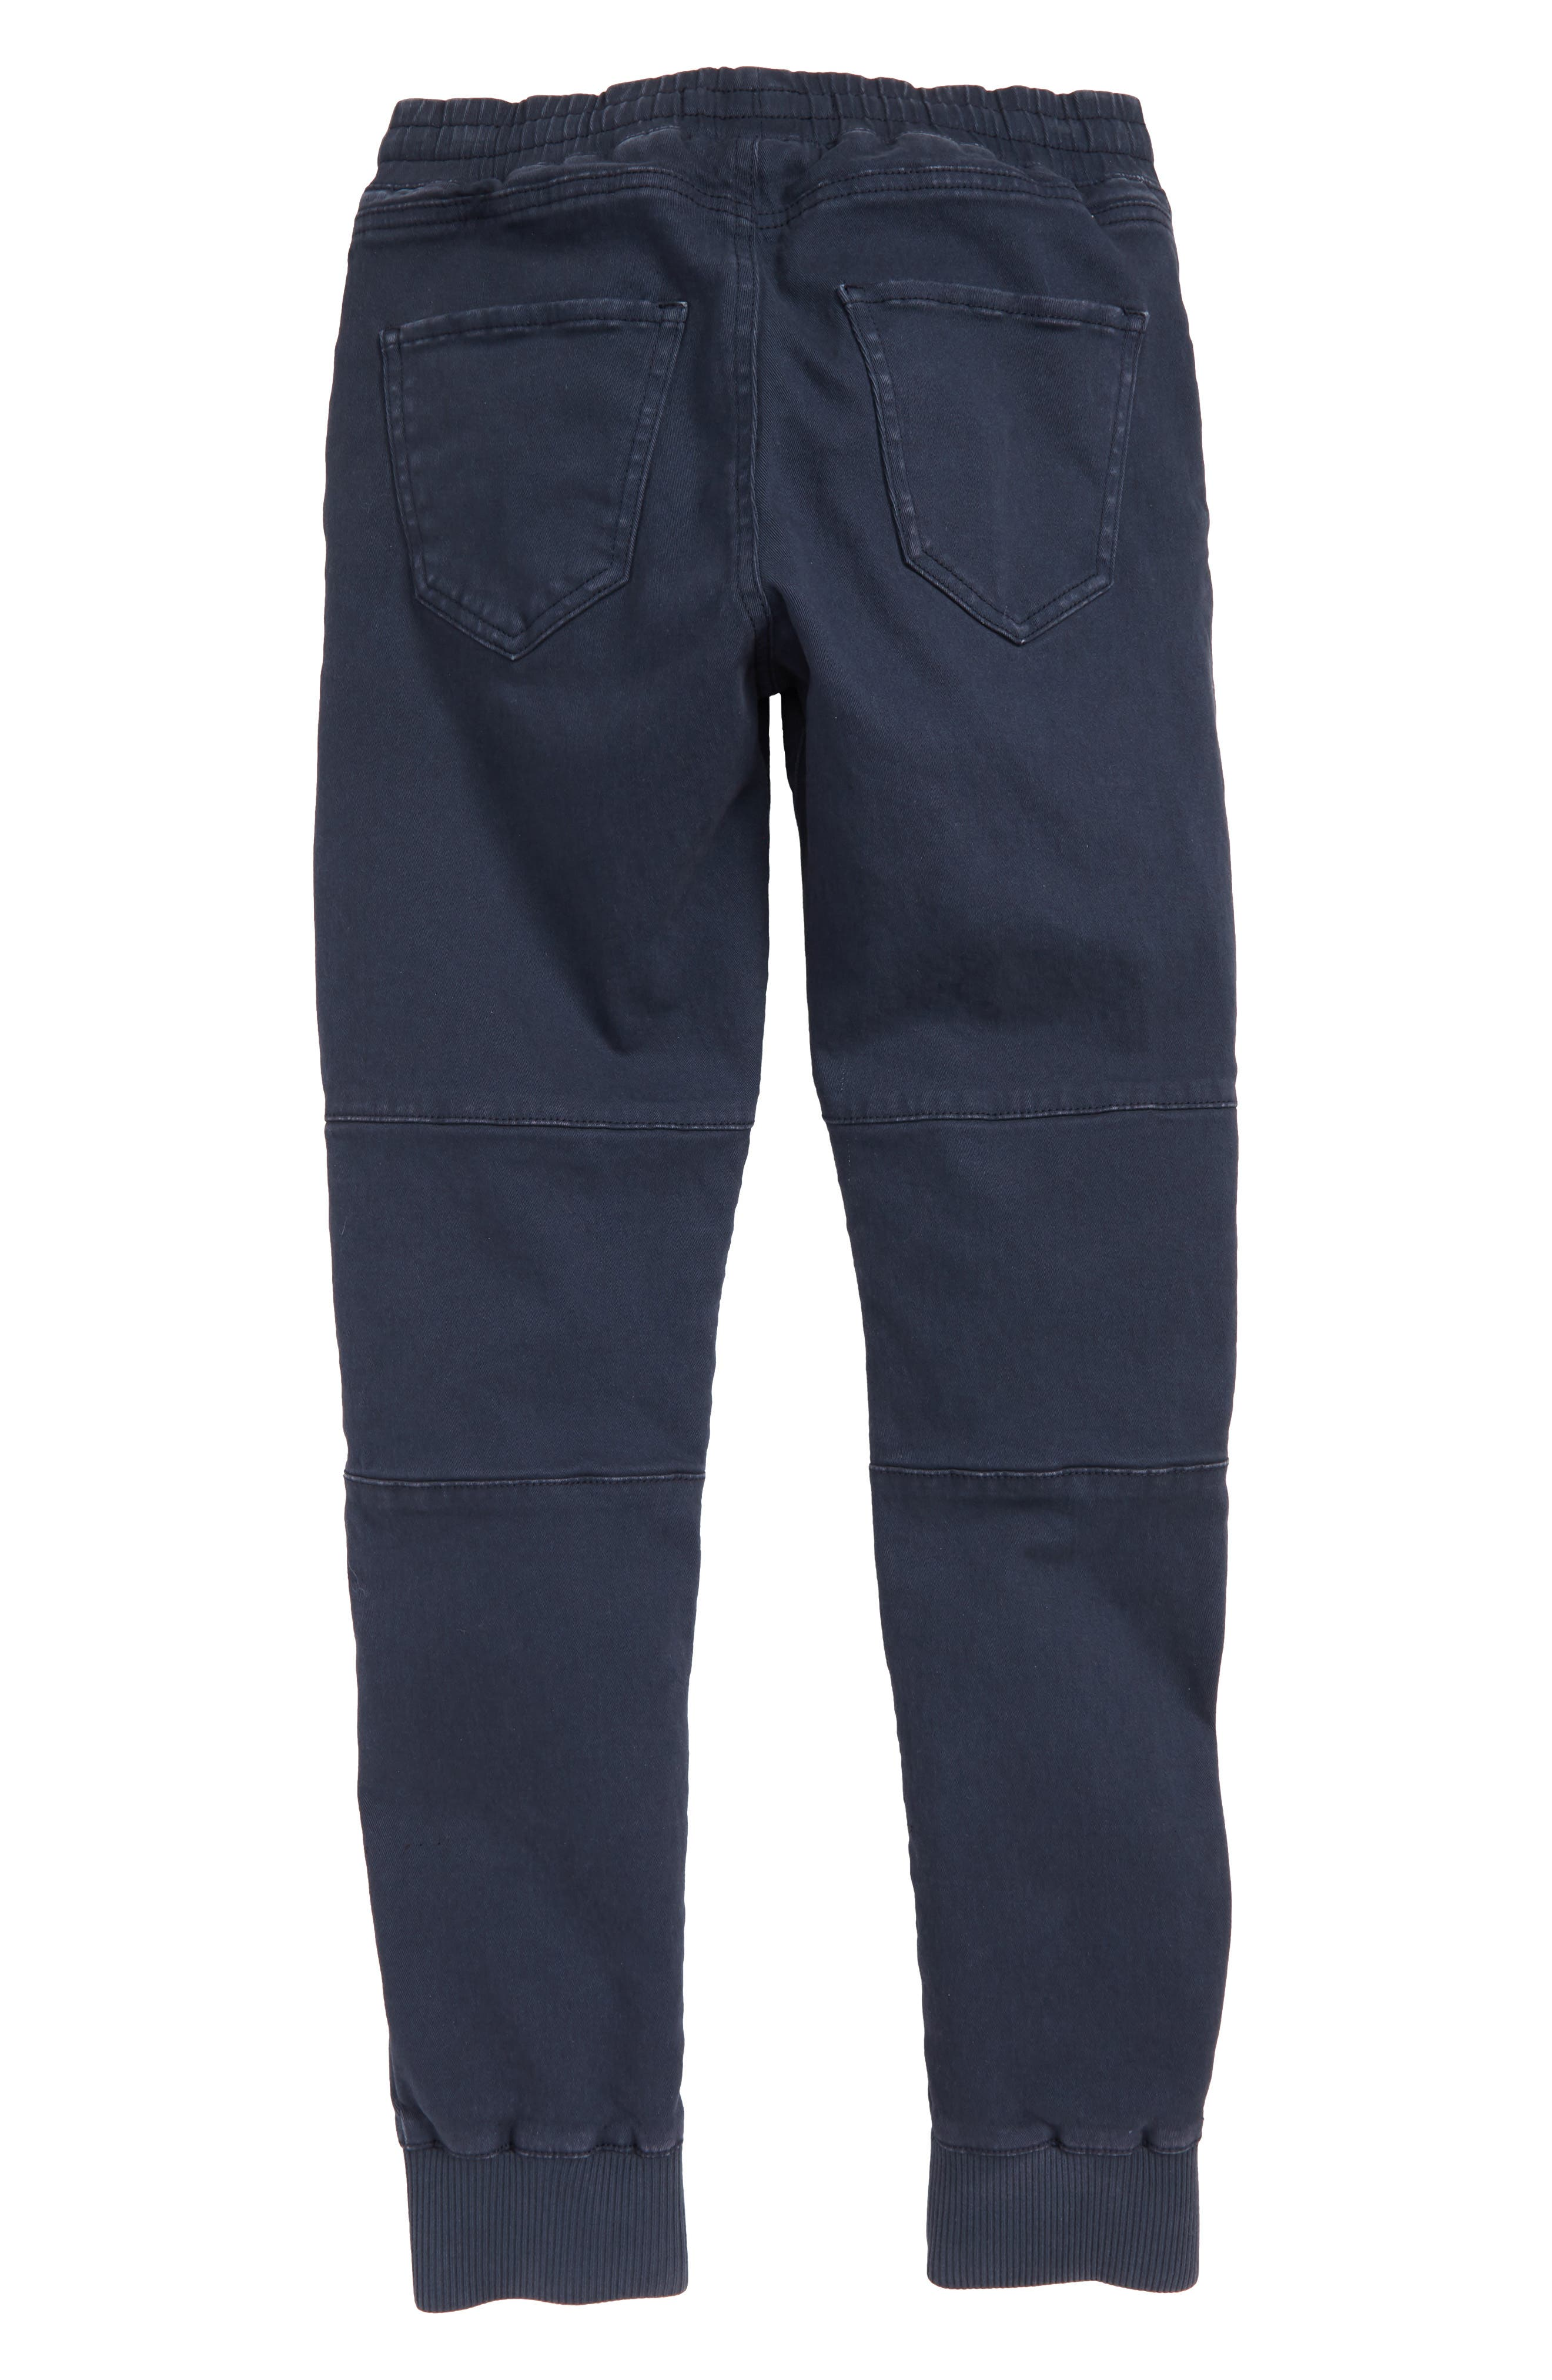 Moto Jogger Pants,                             Alternate thumbnail 2, color,                             NAVY INDIA INK